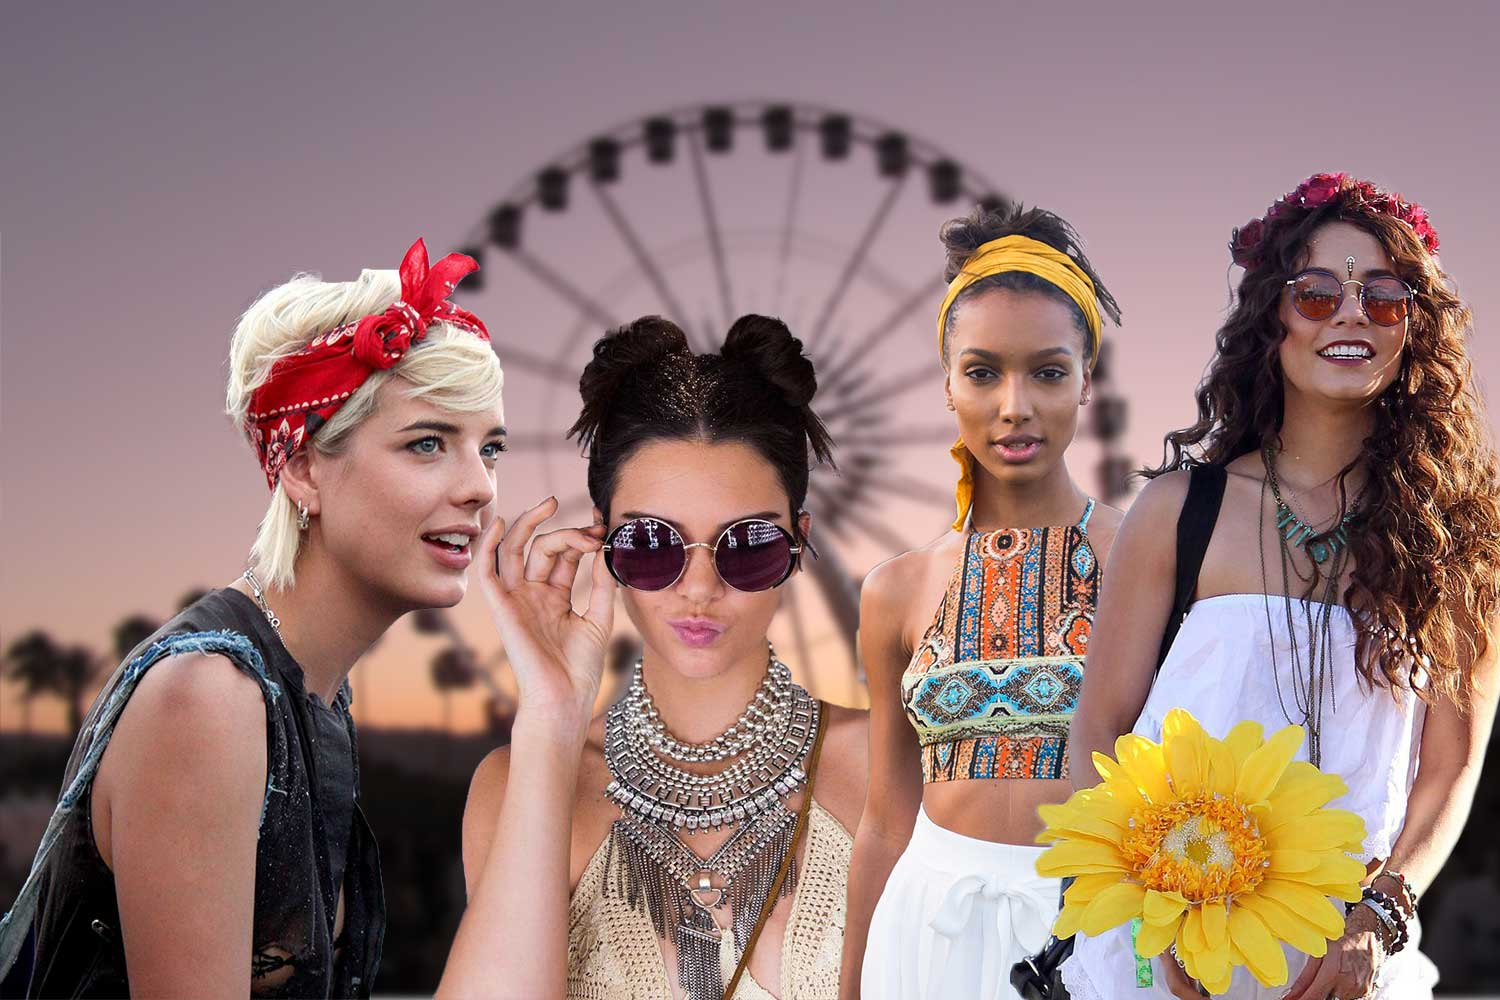 Festival Hair And Boho Looks To Feel The Vibes